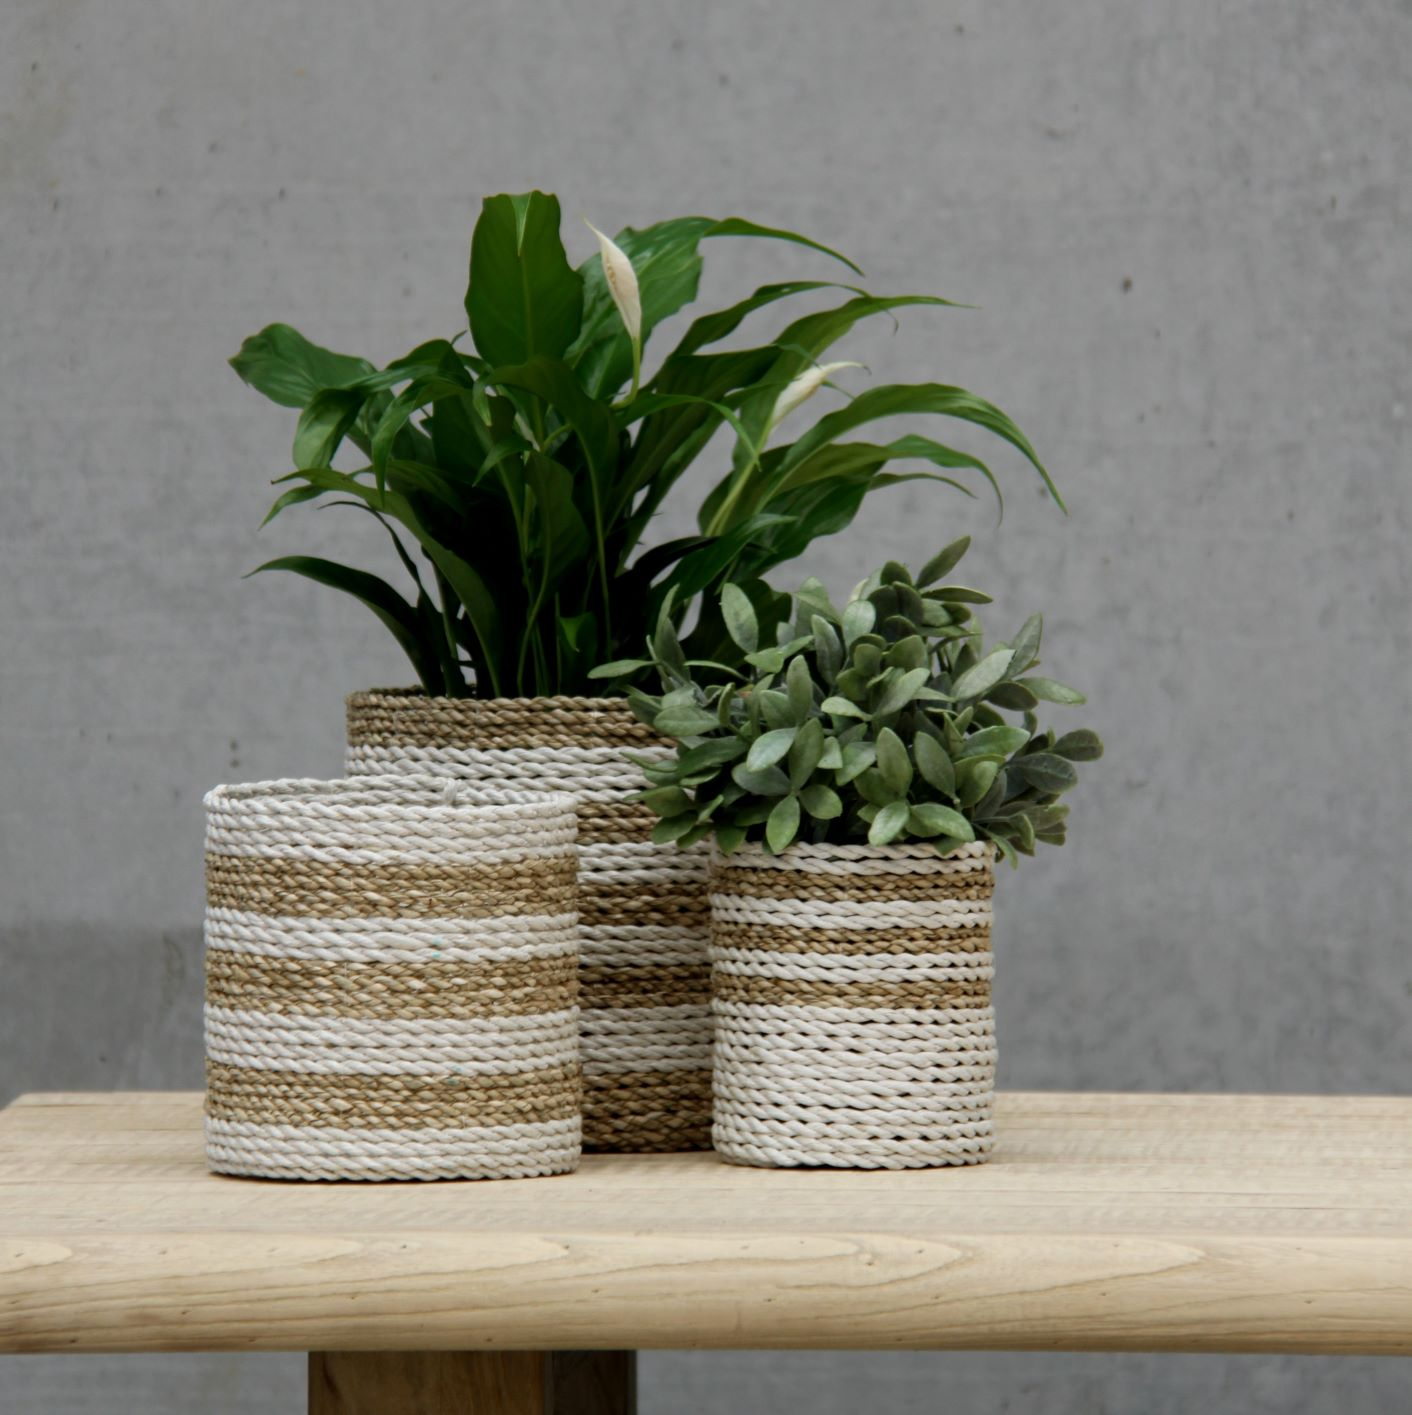 How to style with baskets